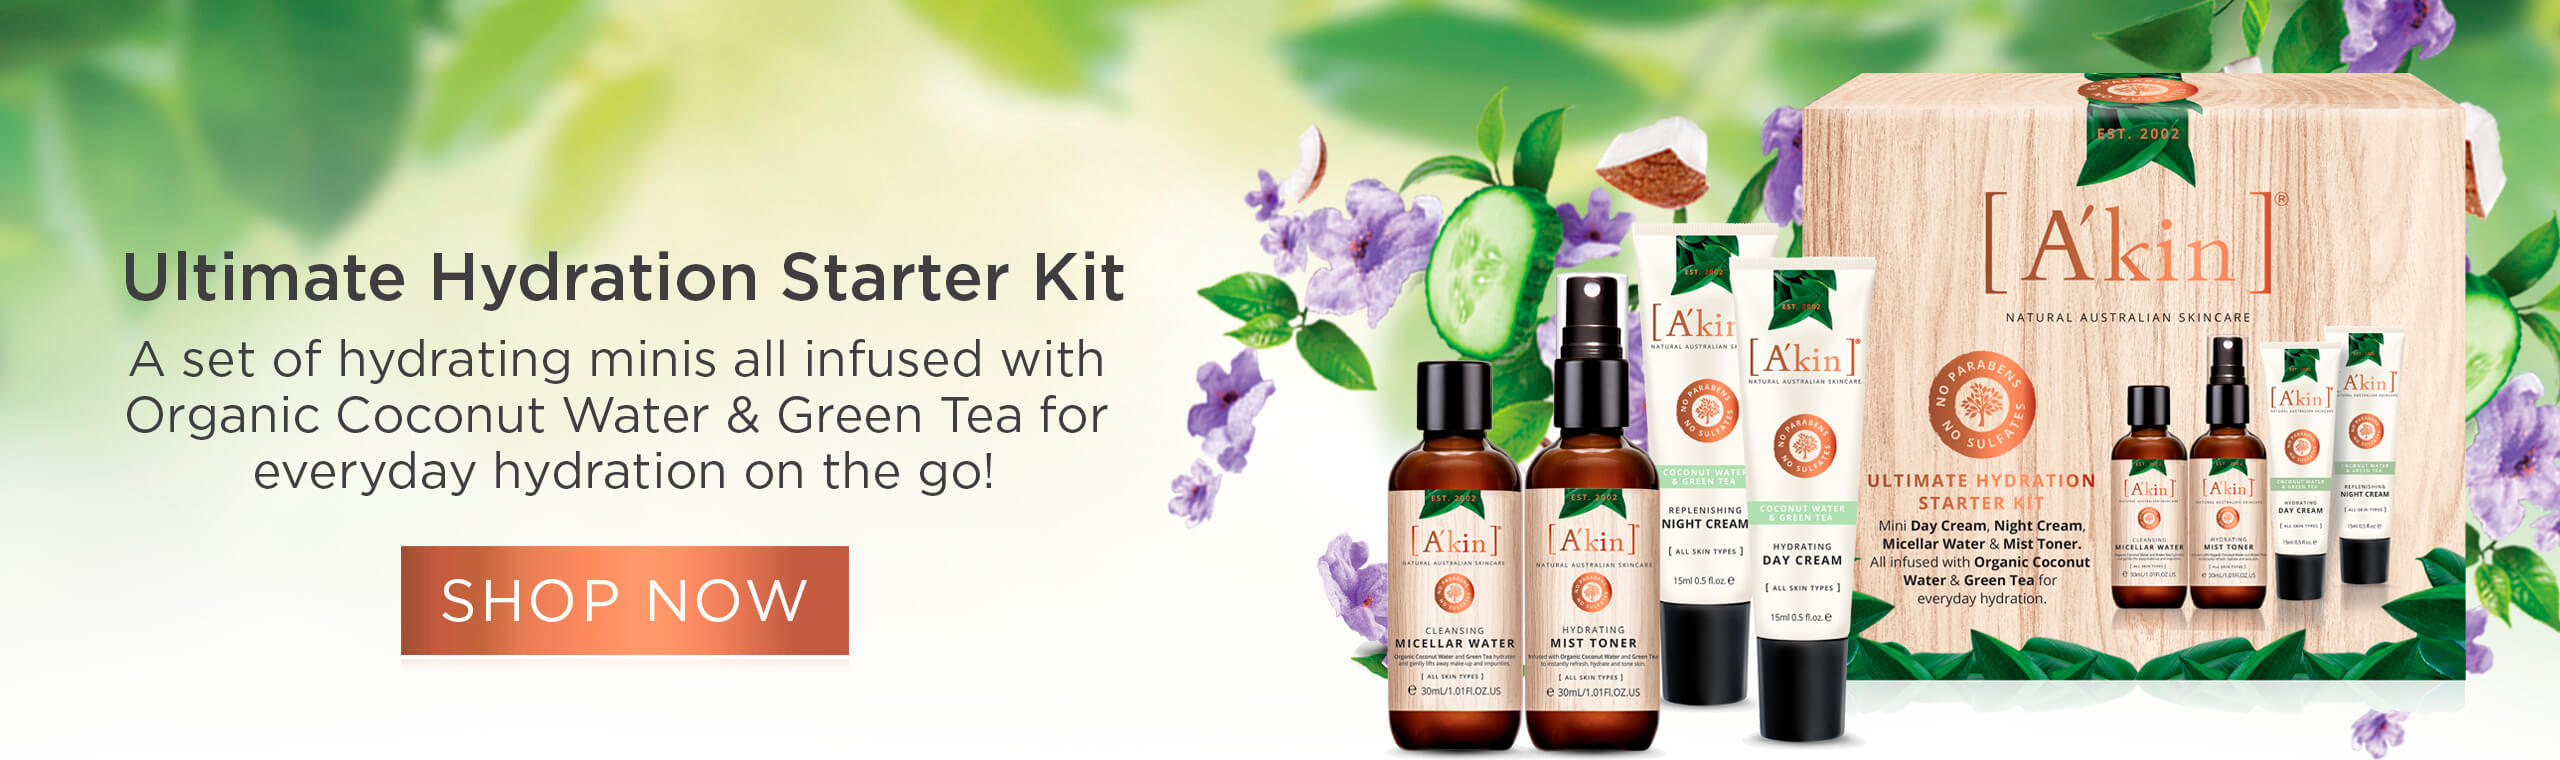 Ultimate Hydration Starter Kit - A set of hydrating minis all infused with Organic Coconut Water & Green Tea for everyday hydration on the go!